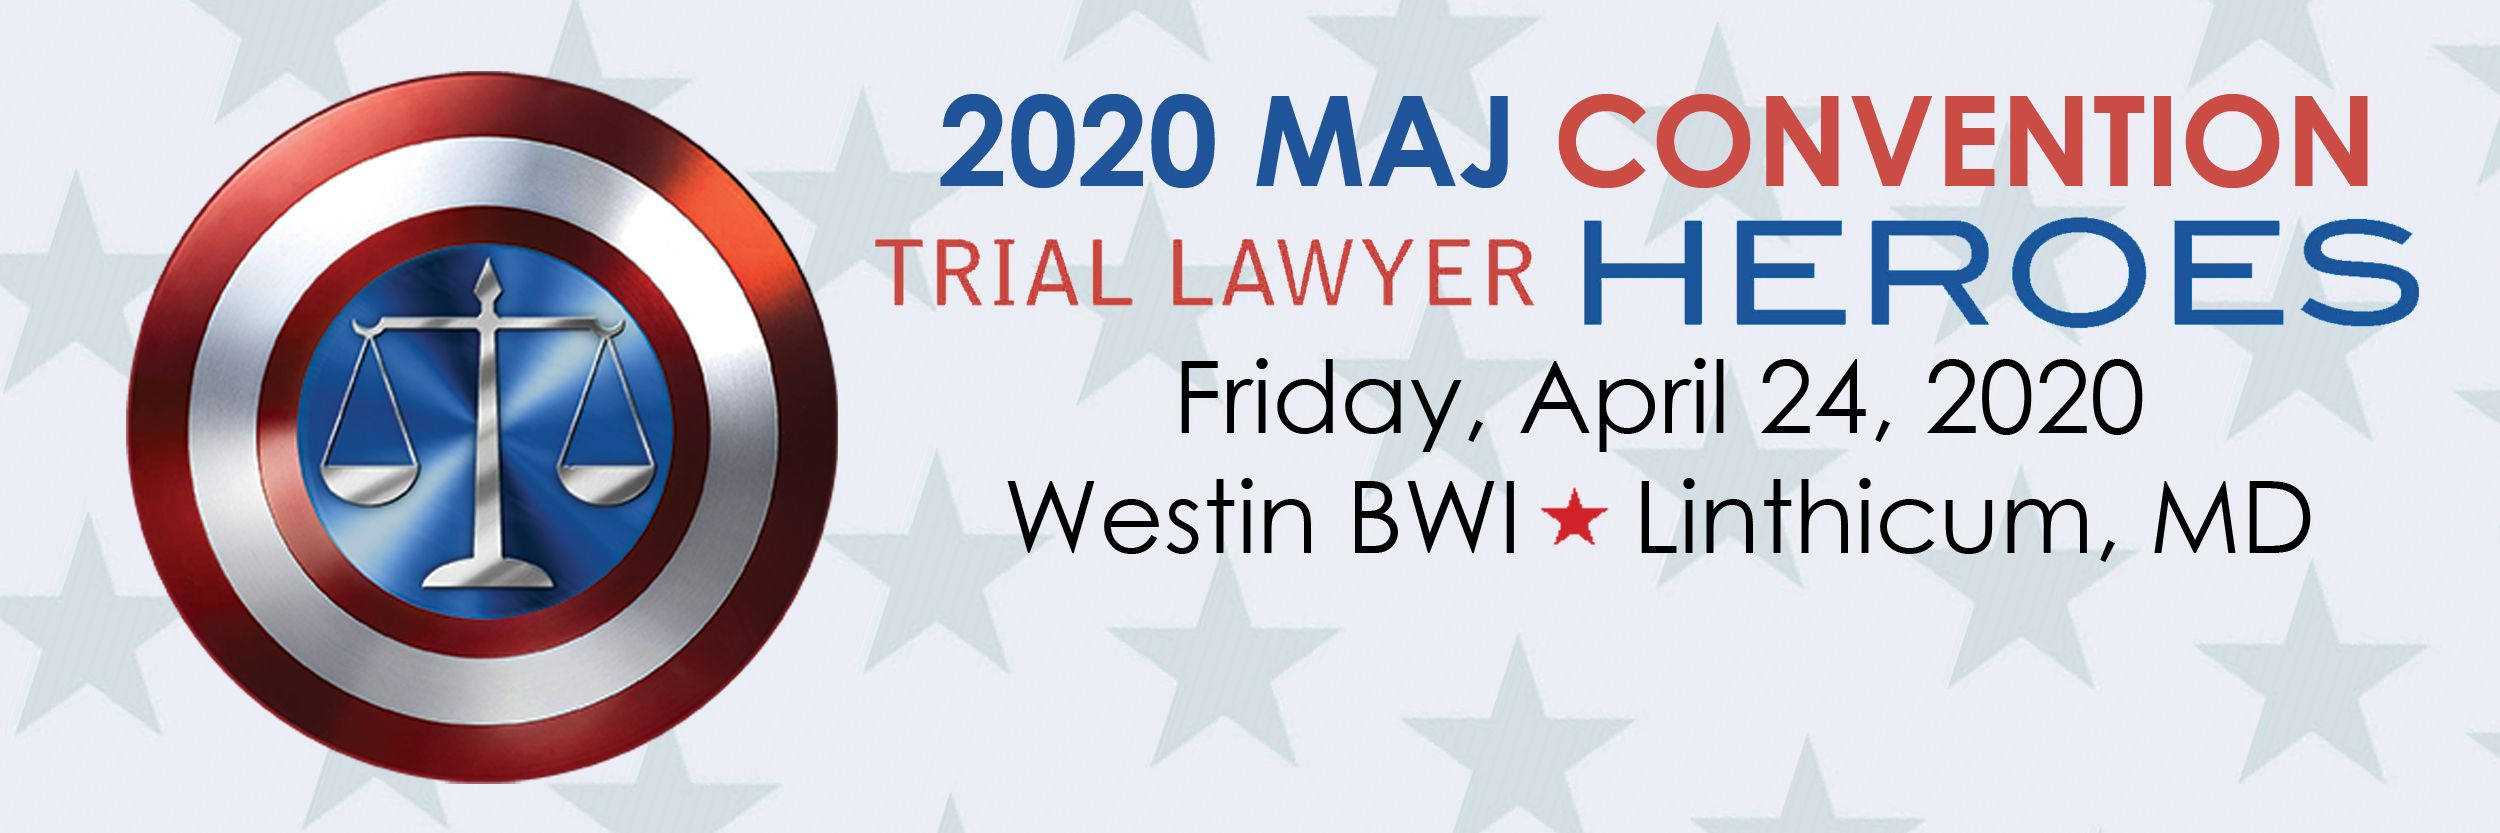 2020 MAJ Convention Trial Lawyer Heroes